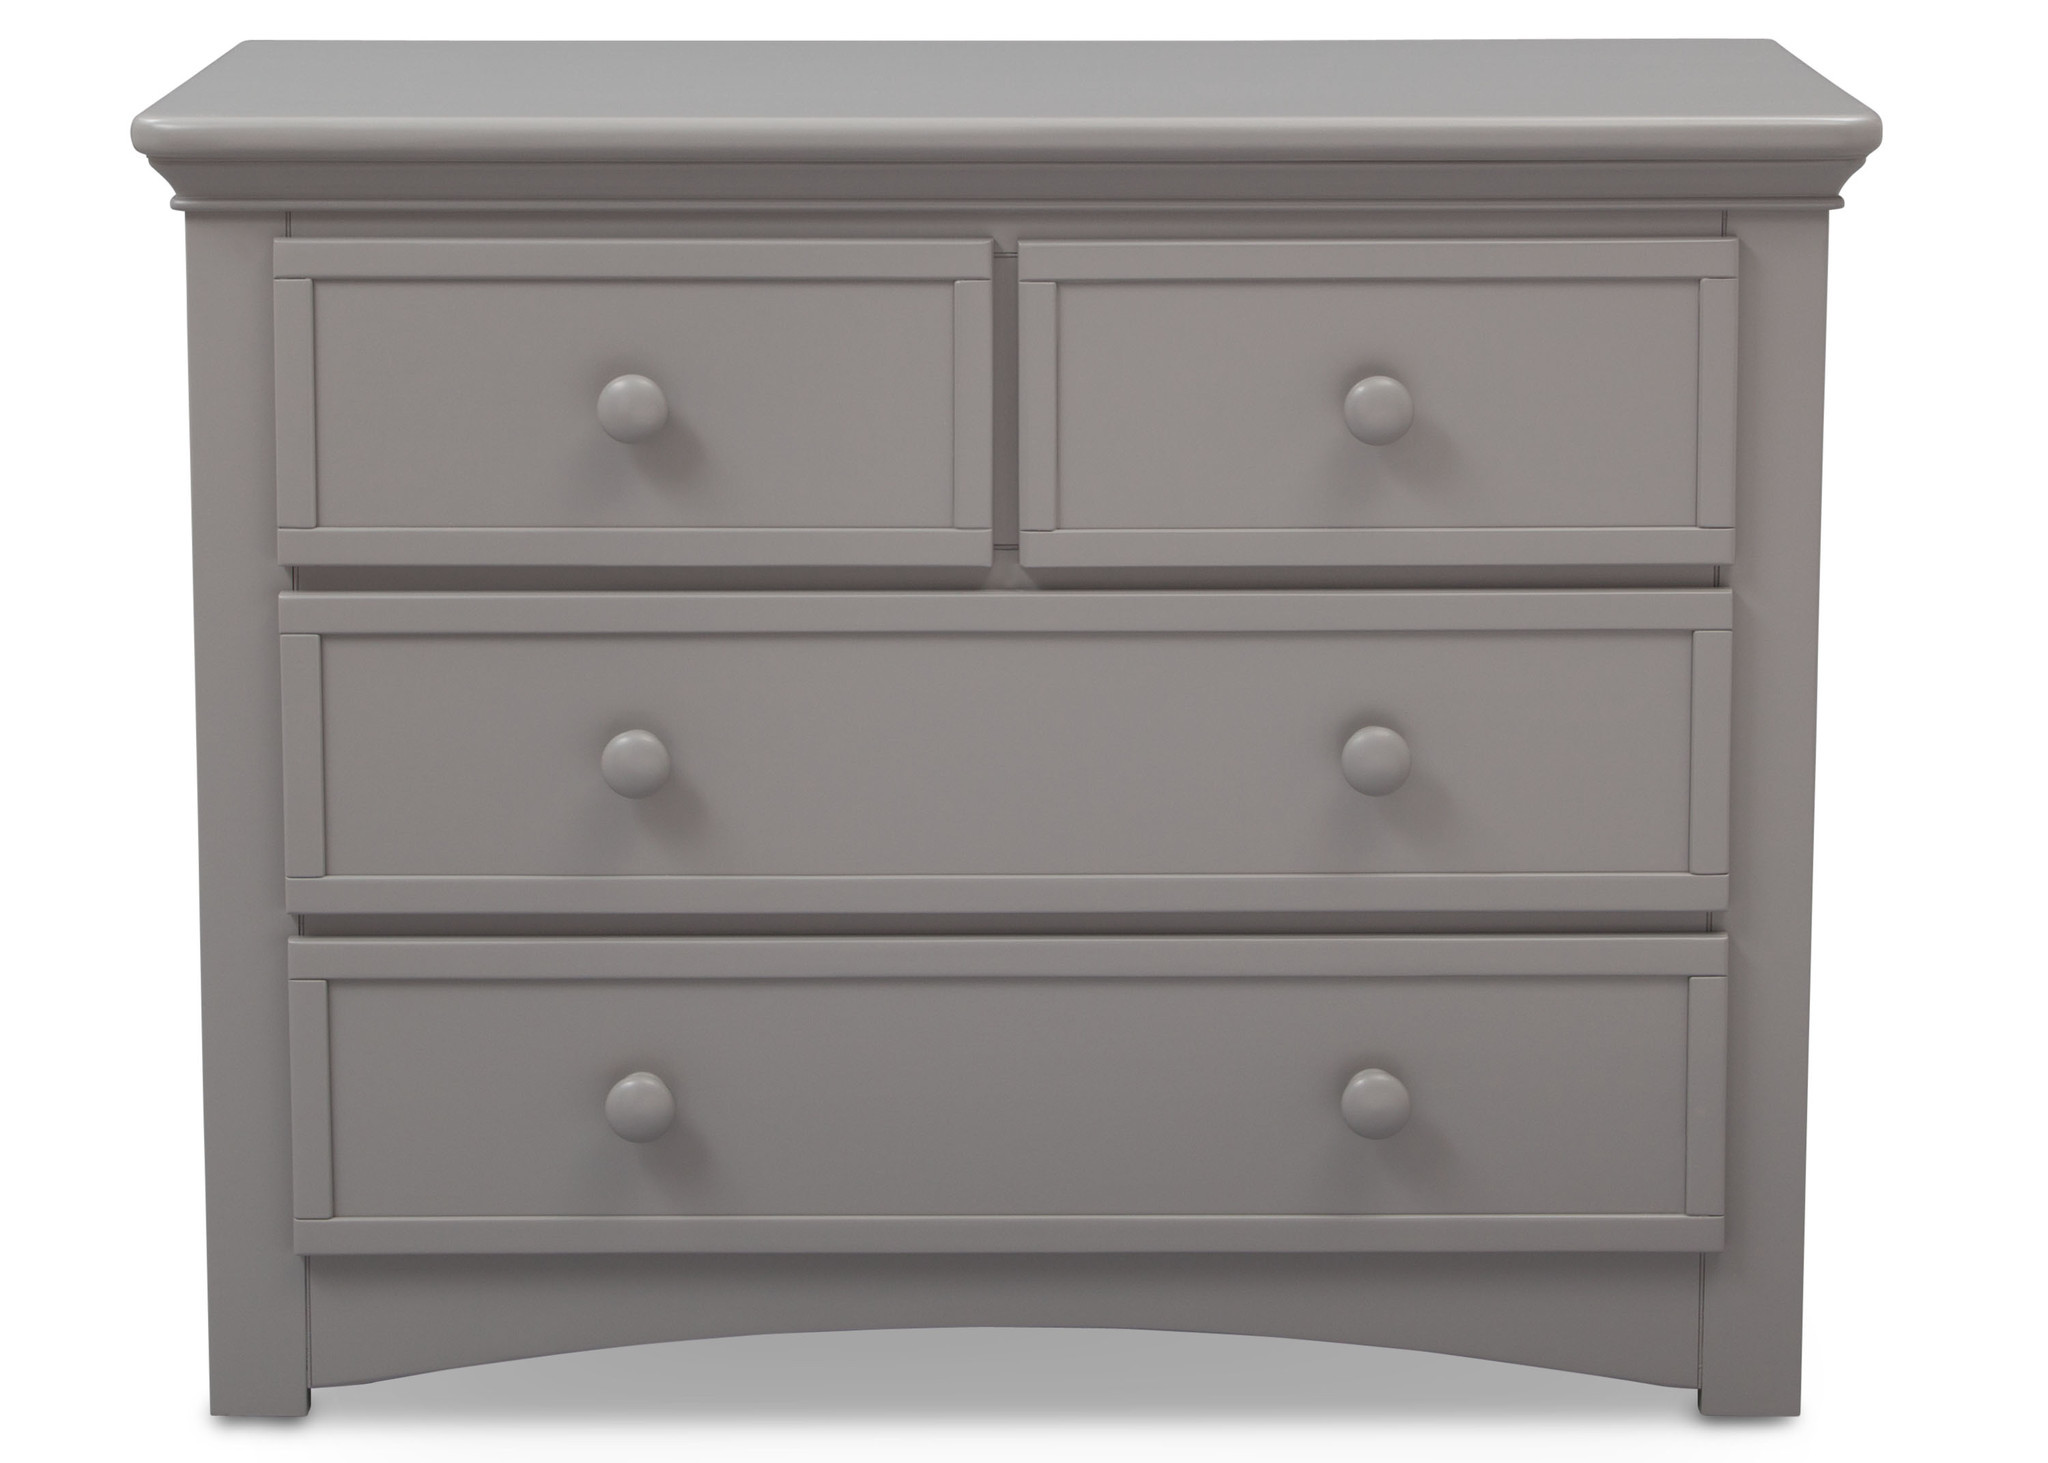 Dresser Drawers For Sale Bestdressers 2017